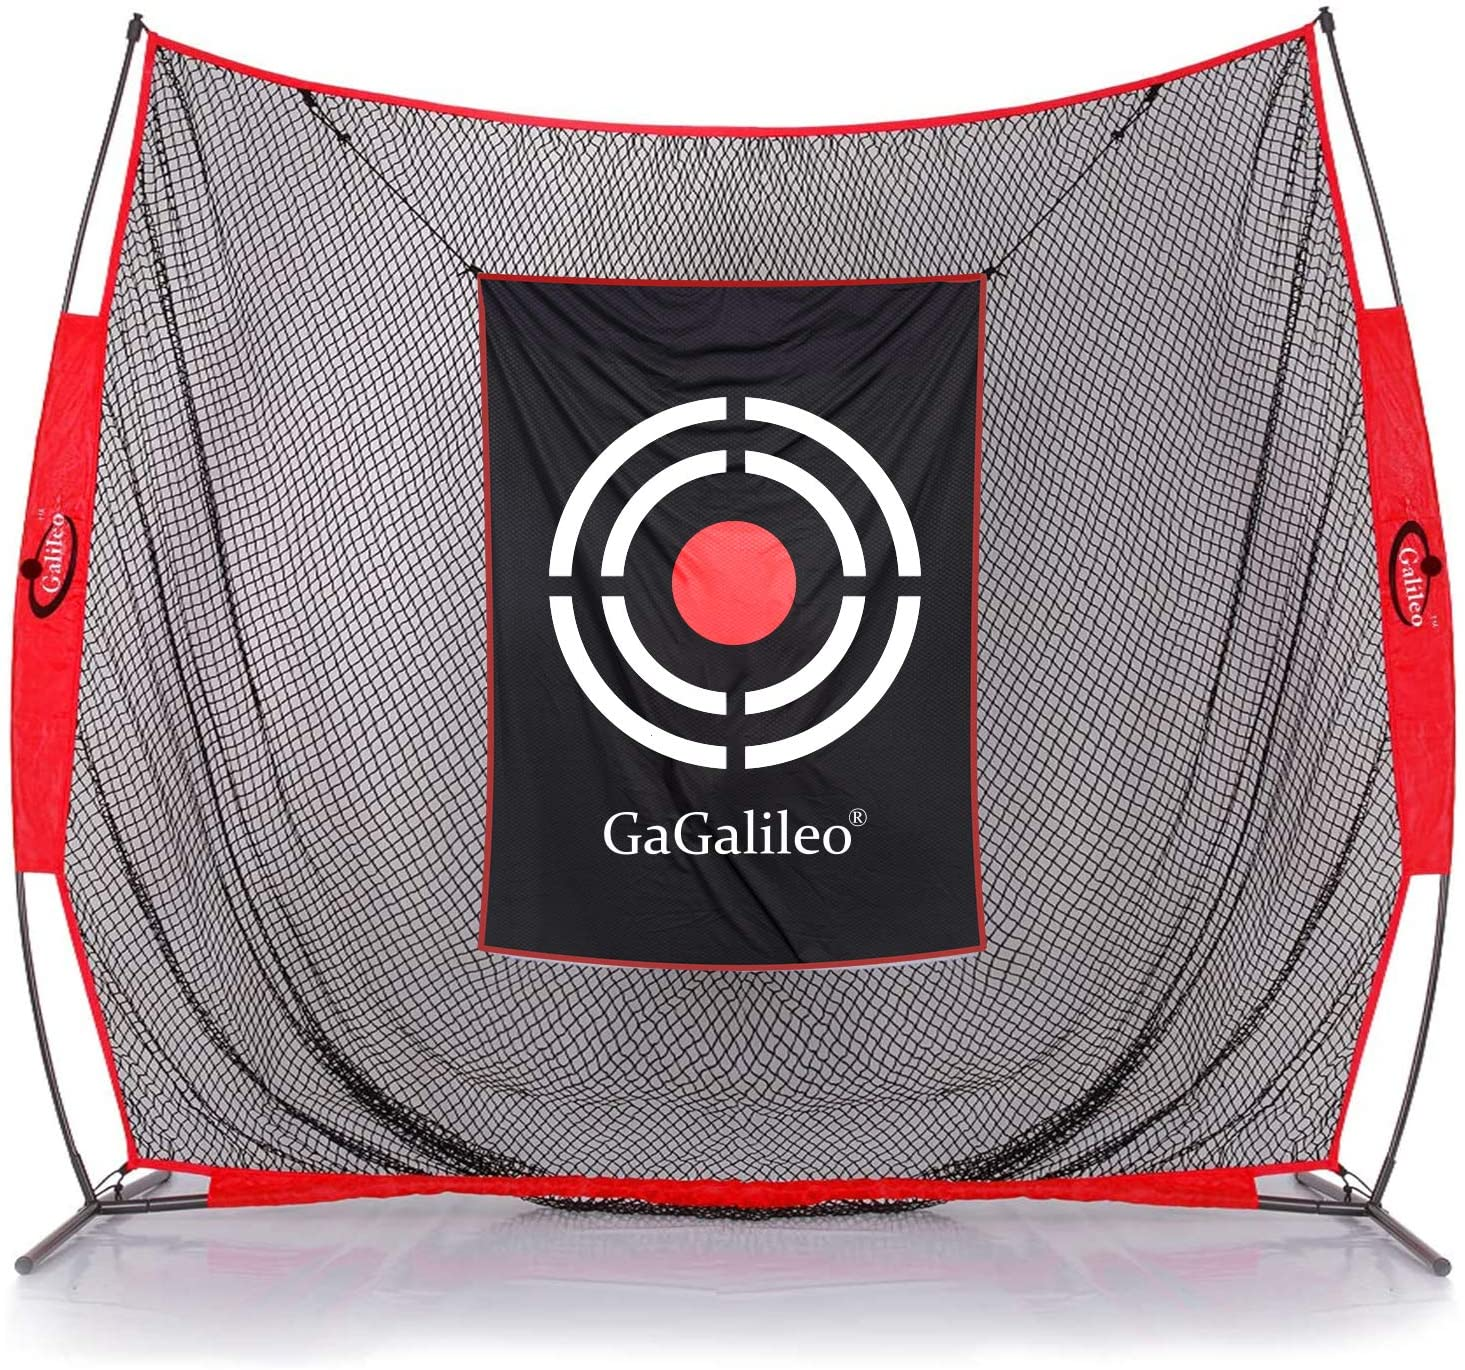 Galileo Golf Practice Net 7x8 Feet Golf Hitting Nets Driving Range Indoor Outdoor Golf Training Aids with Target and Carry Bag